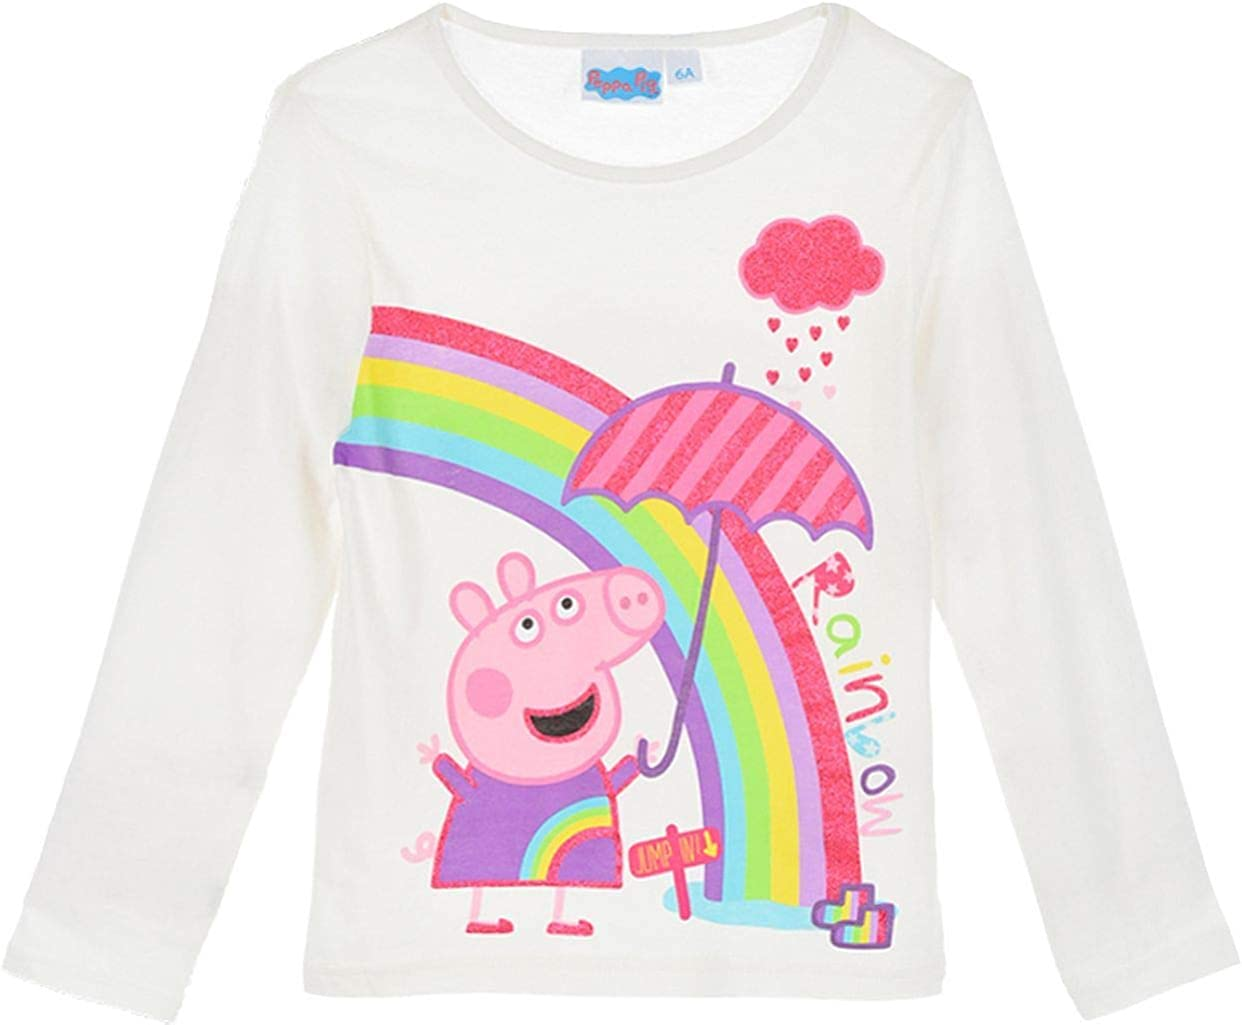 with Glitter 2-6 Years 100/% Cotton Made Peppa Pig Official Girls Long Sleeve Tops T-Shirts